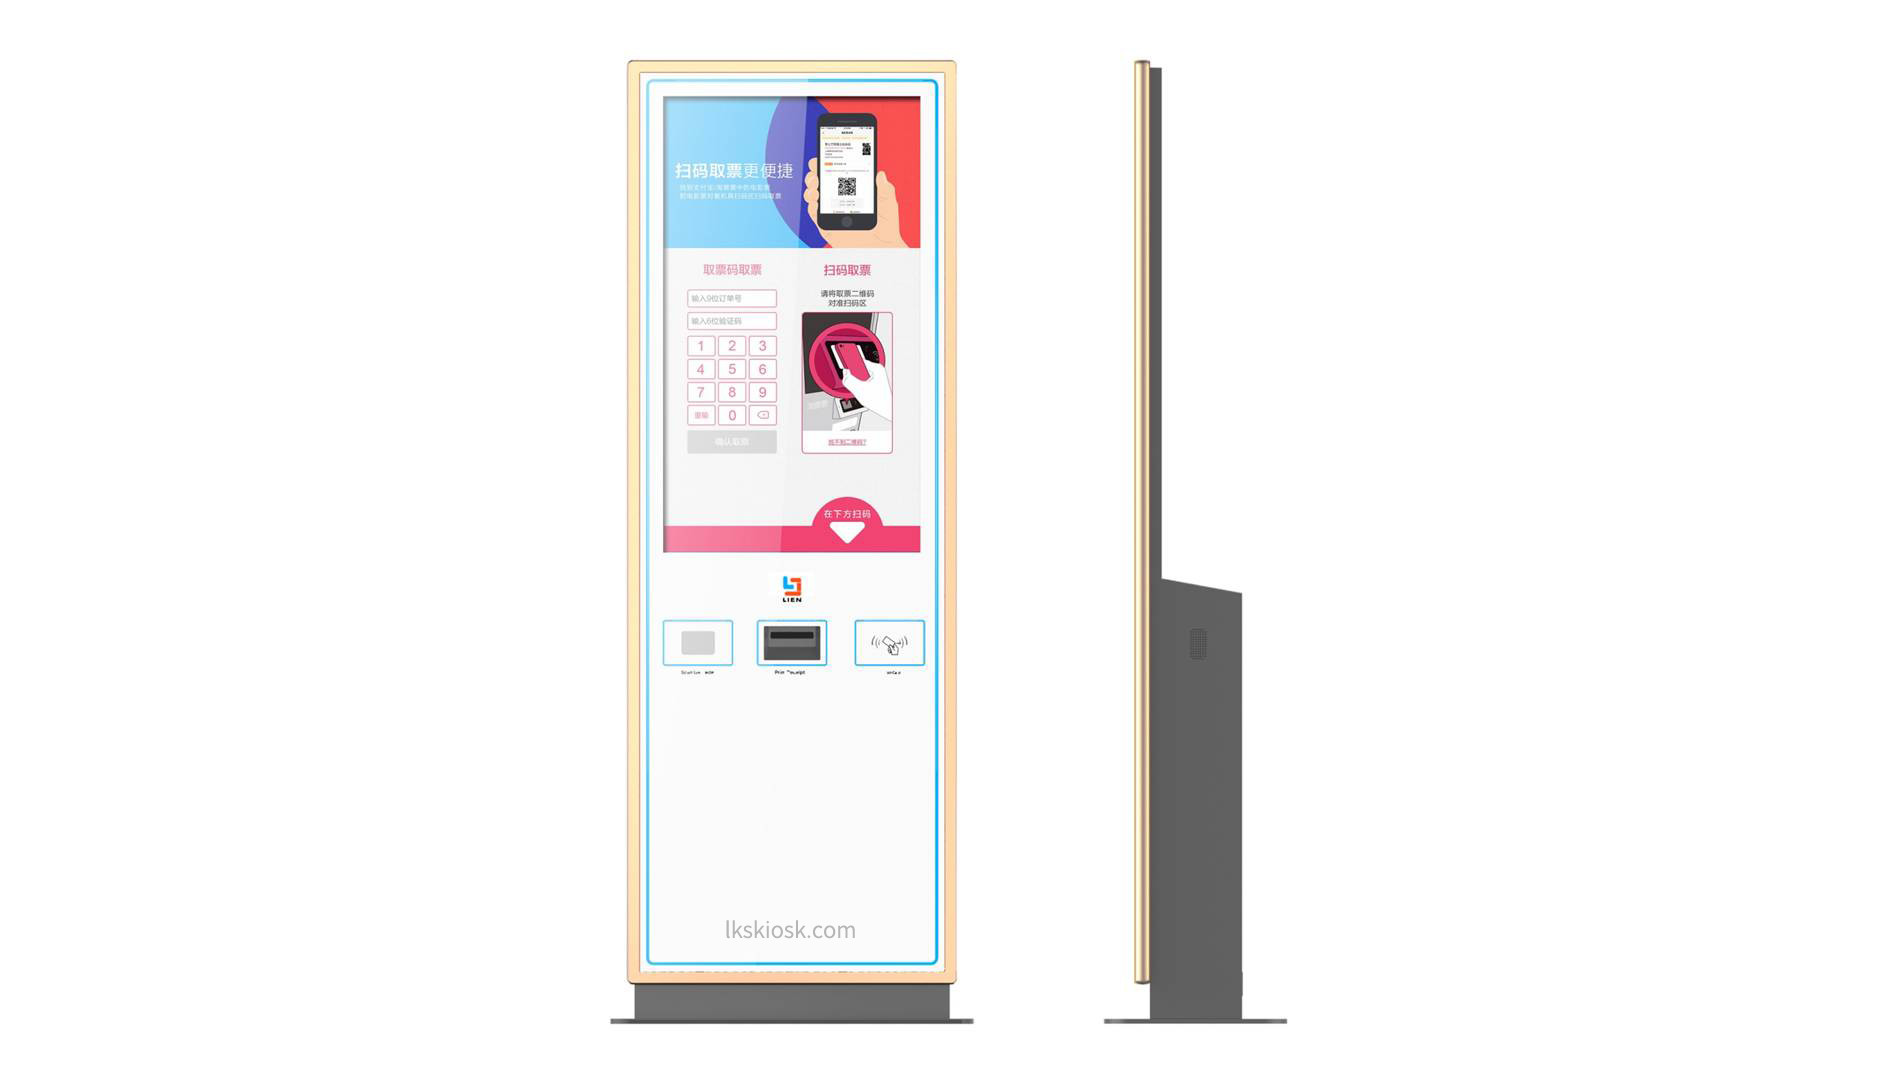 43 inch Self Ordering Kiosk for Restaurant/Self-serice Kiosk Provide Quick Service/Custom Self order Kiosk